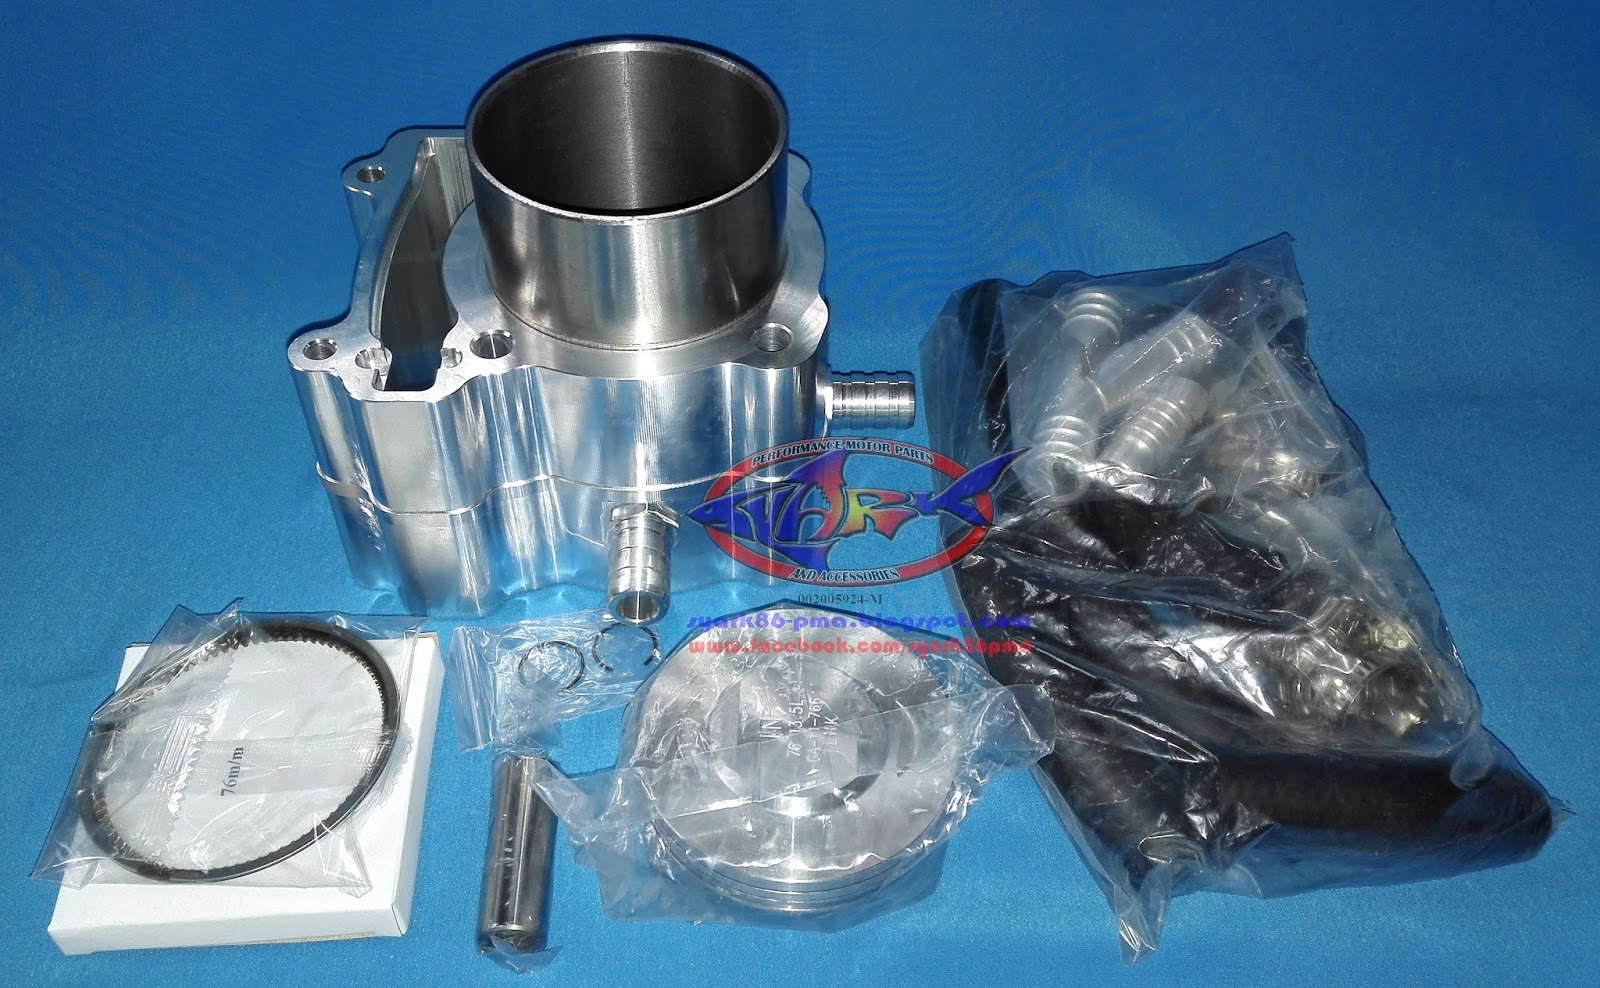 Syark Performance Motor Parts And Accessories Online Shop